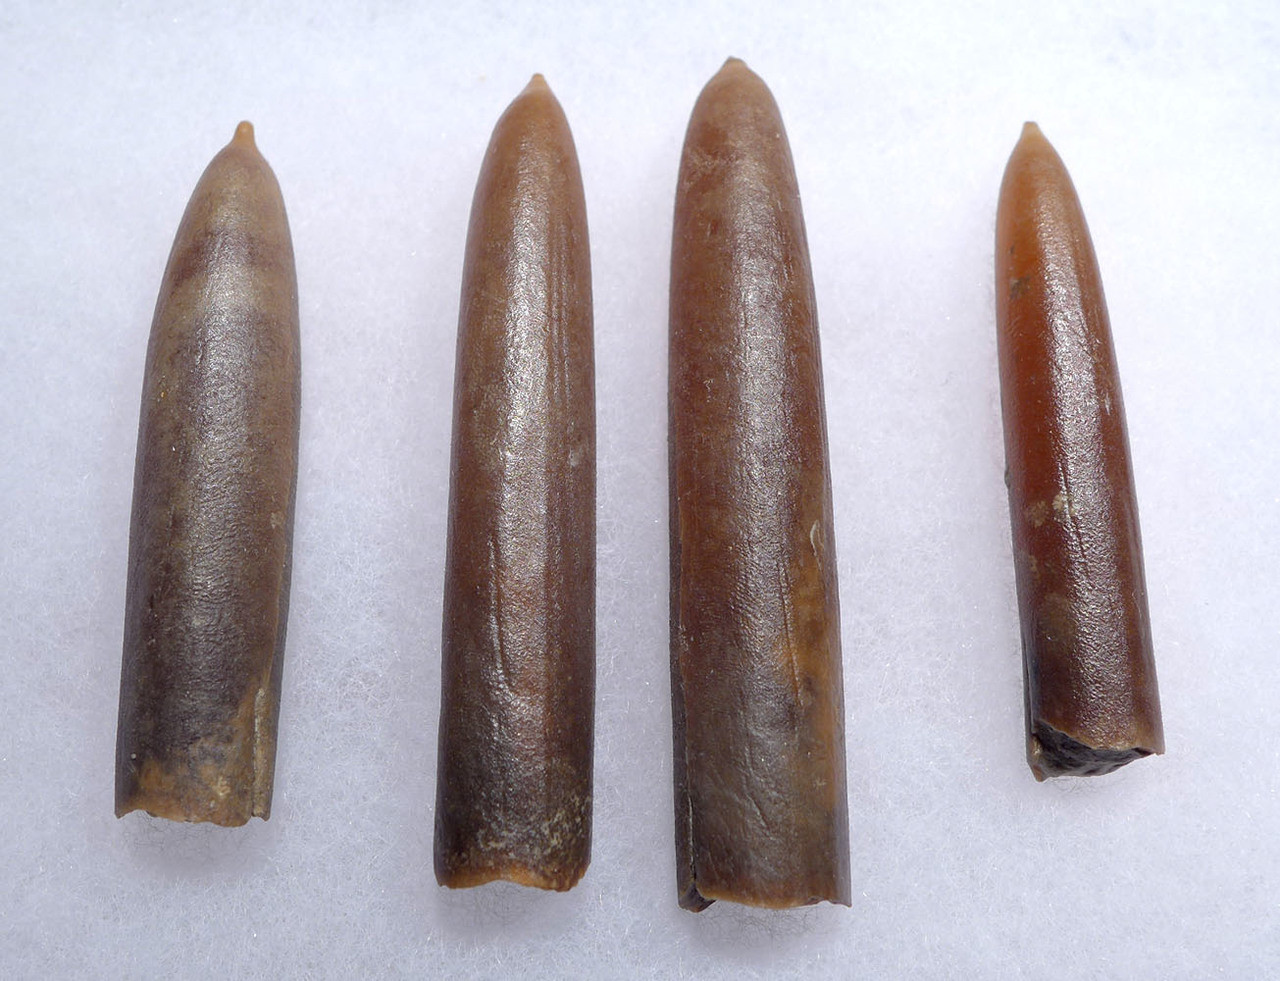 FOUR NATURAL GONIOTEUTHIS SOLID CALCITE BELEMNITES FROM THE CRETACEOUS PERIOD *BEL100